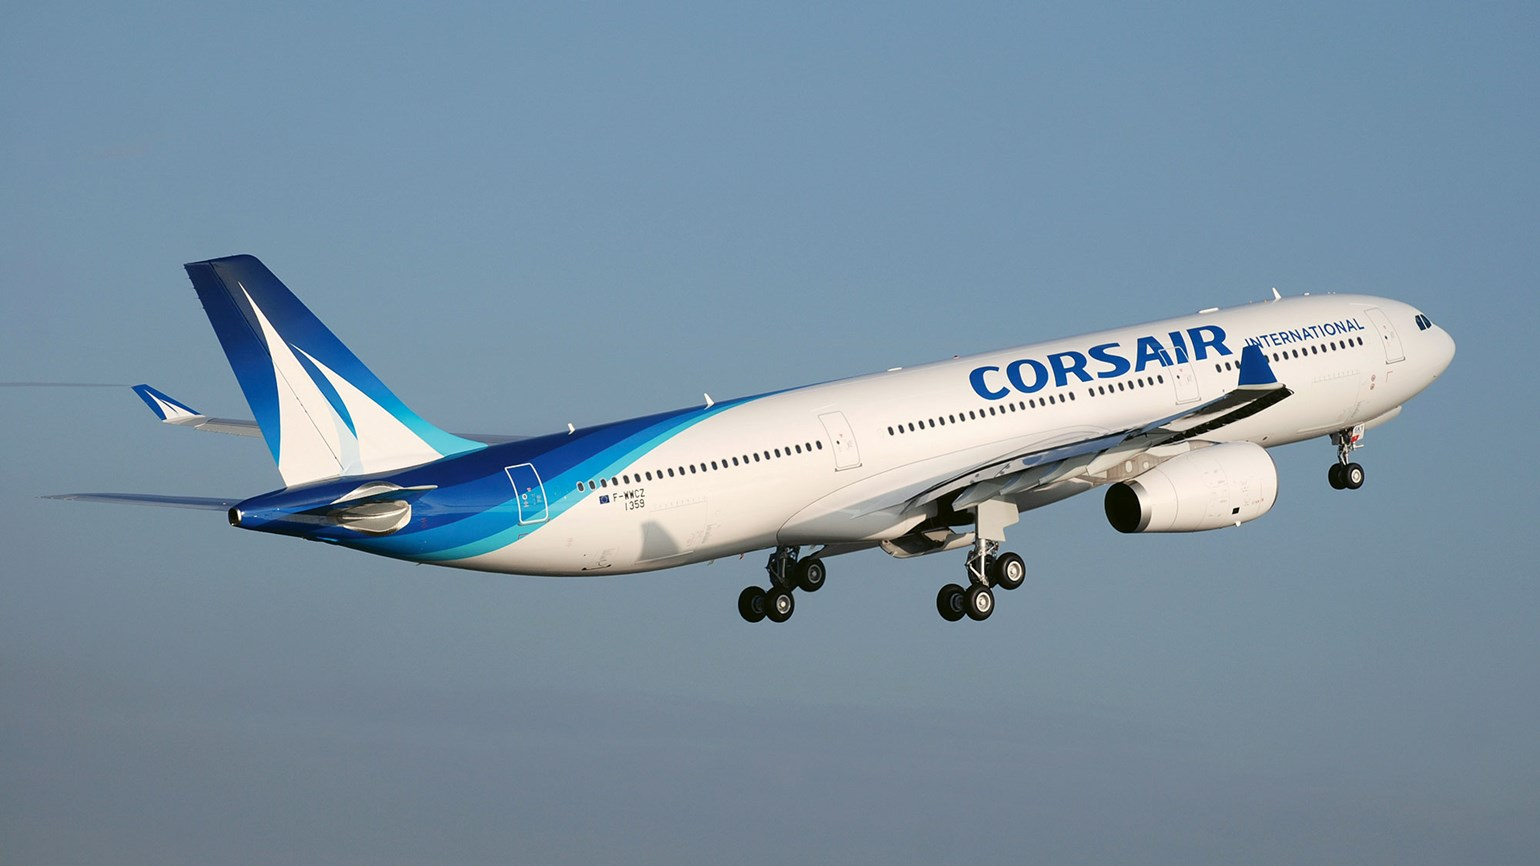 Paris-Miami is Corsair's first U.S. route